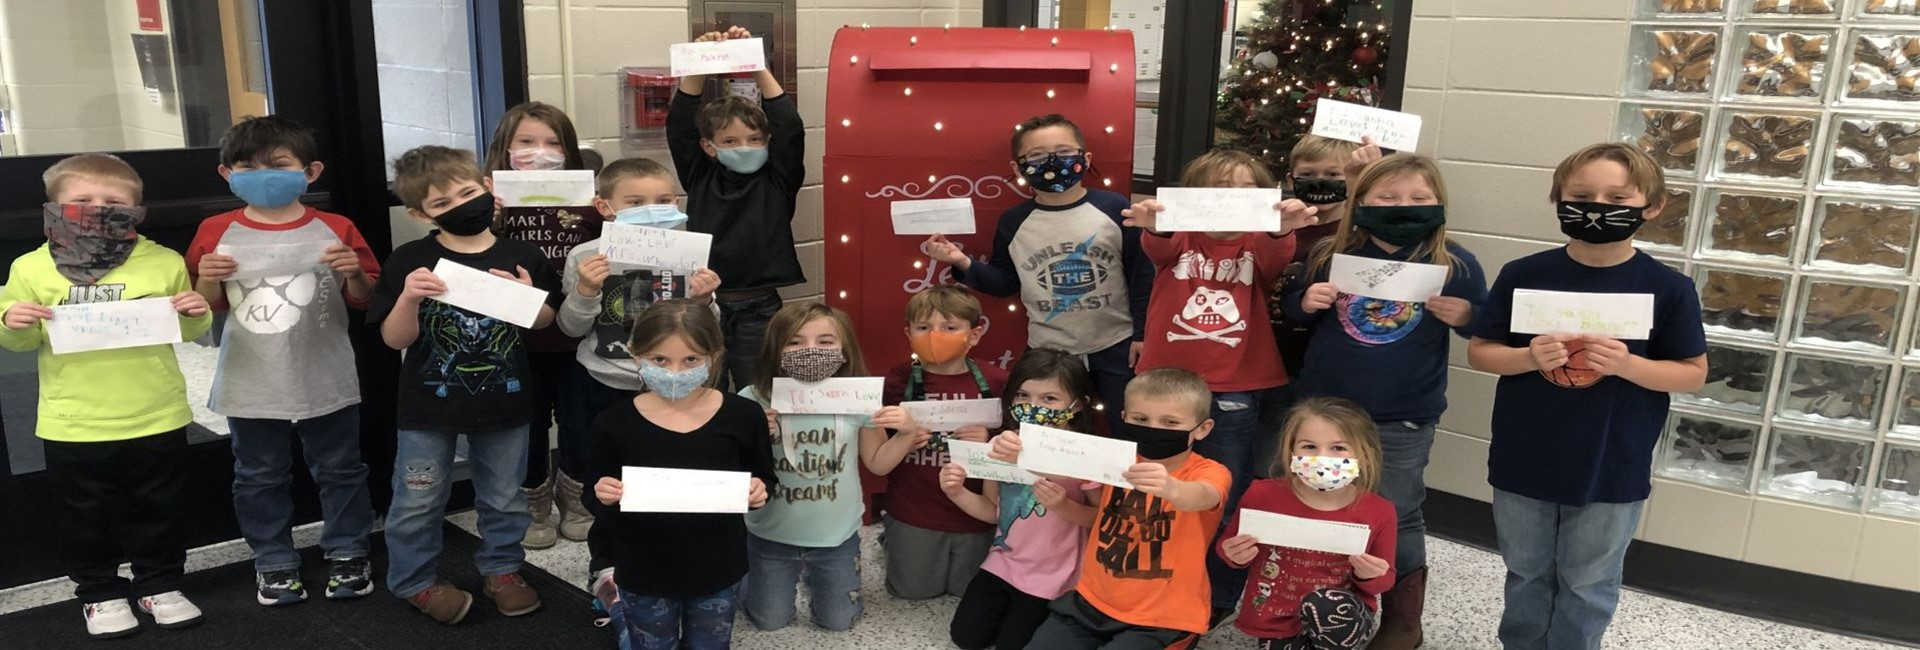 Mrs. Wheelers class getting all ready to mail out their letters to Santa - WES.